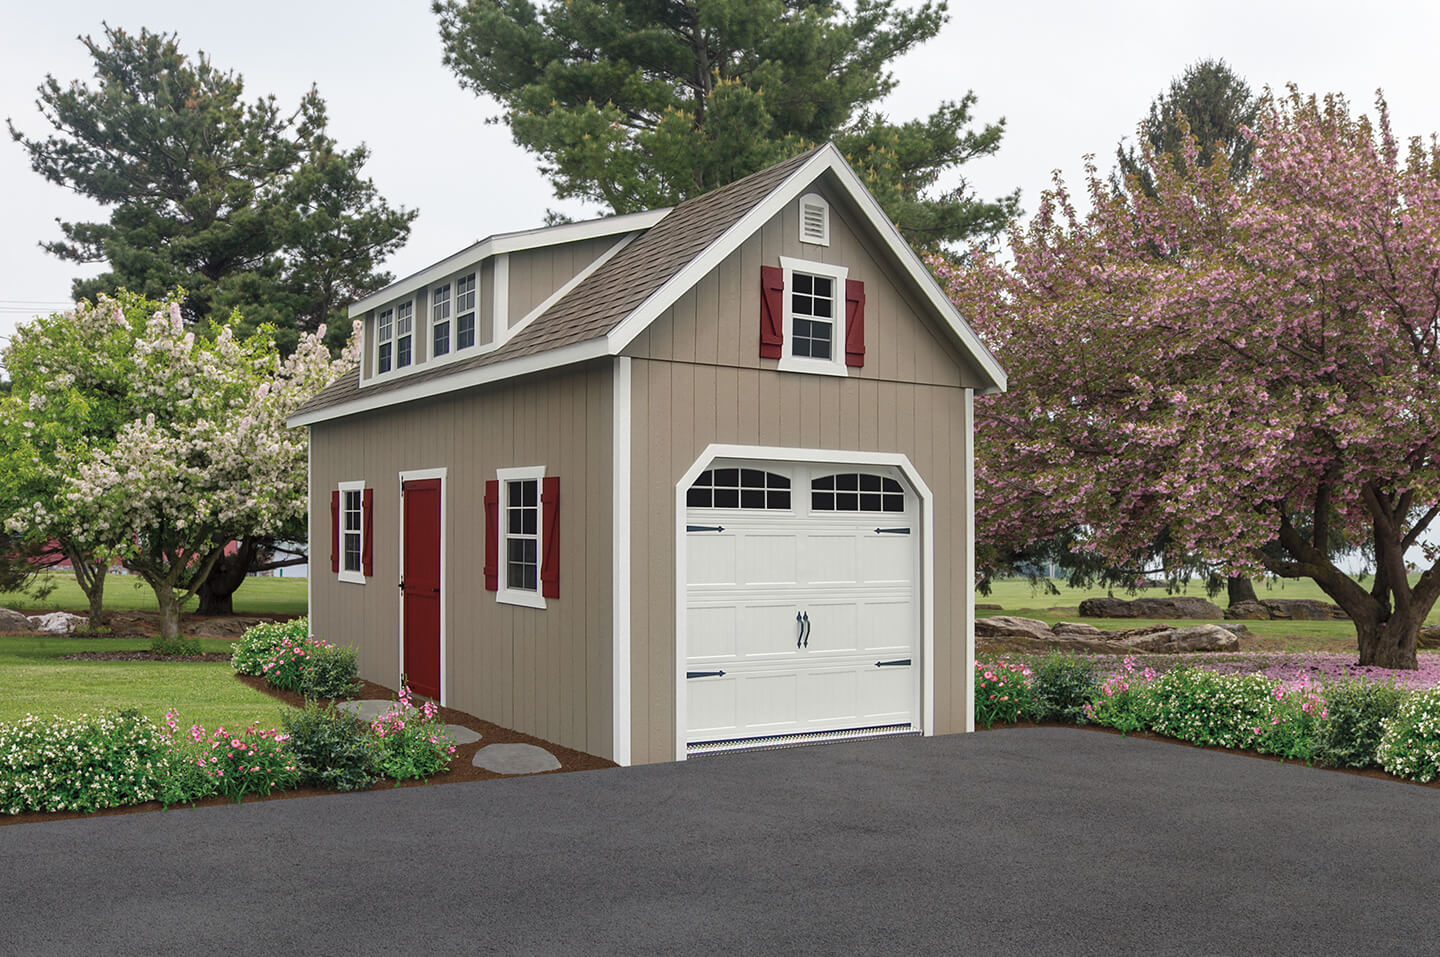 Craft sheds home design inspirations for Two story garages for sale